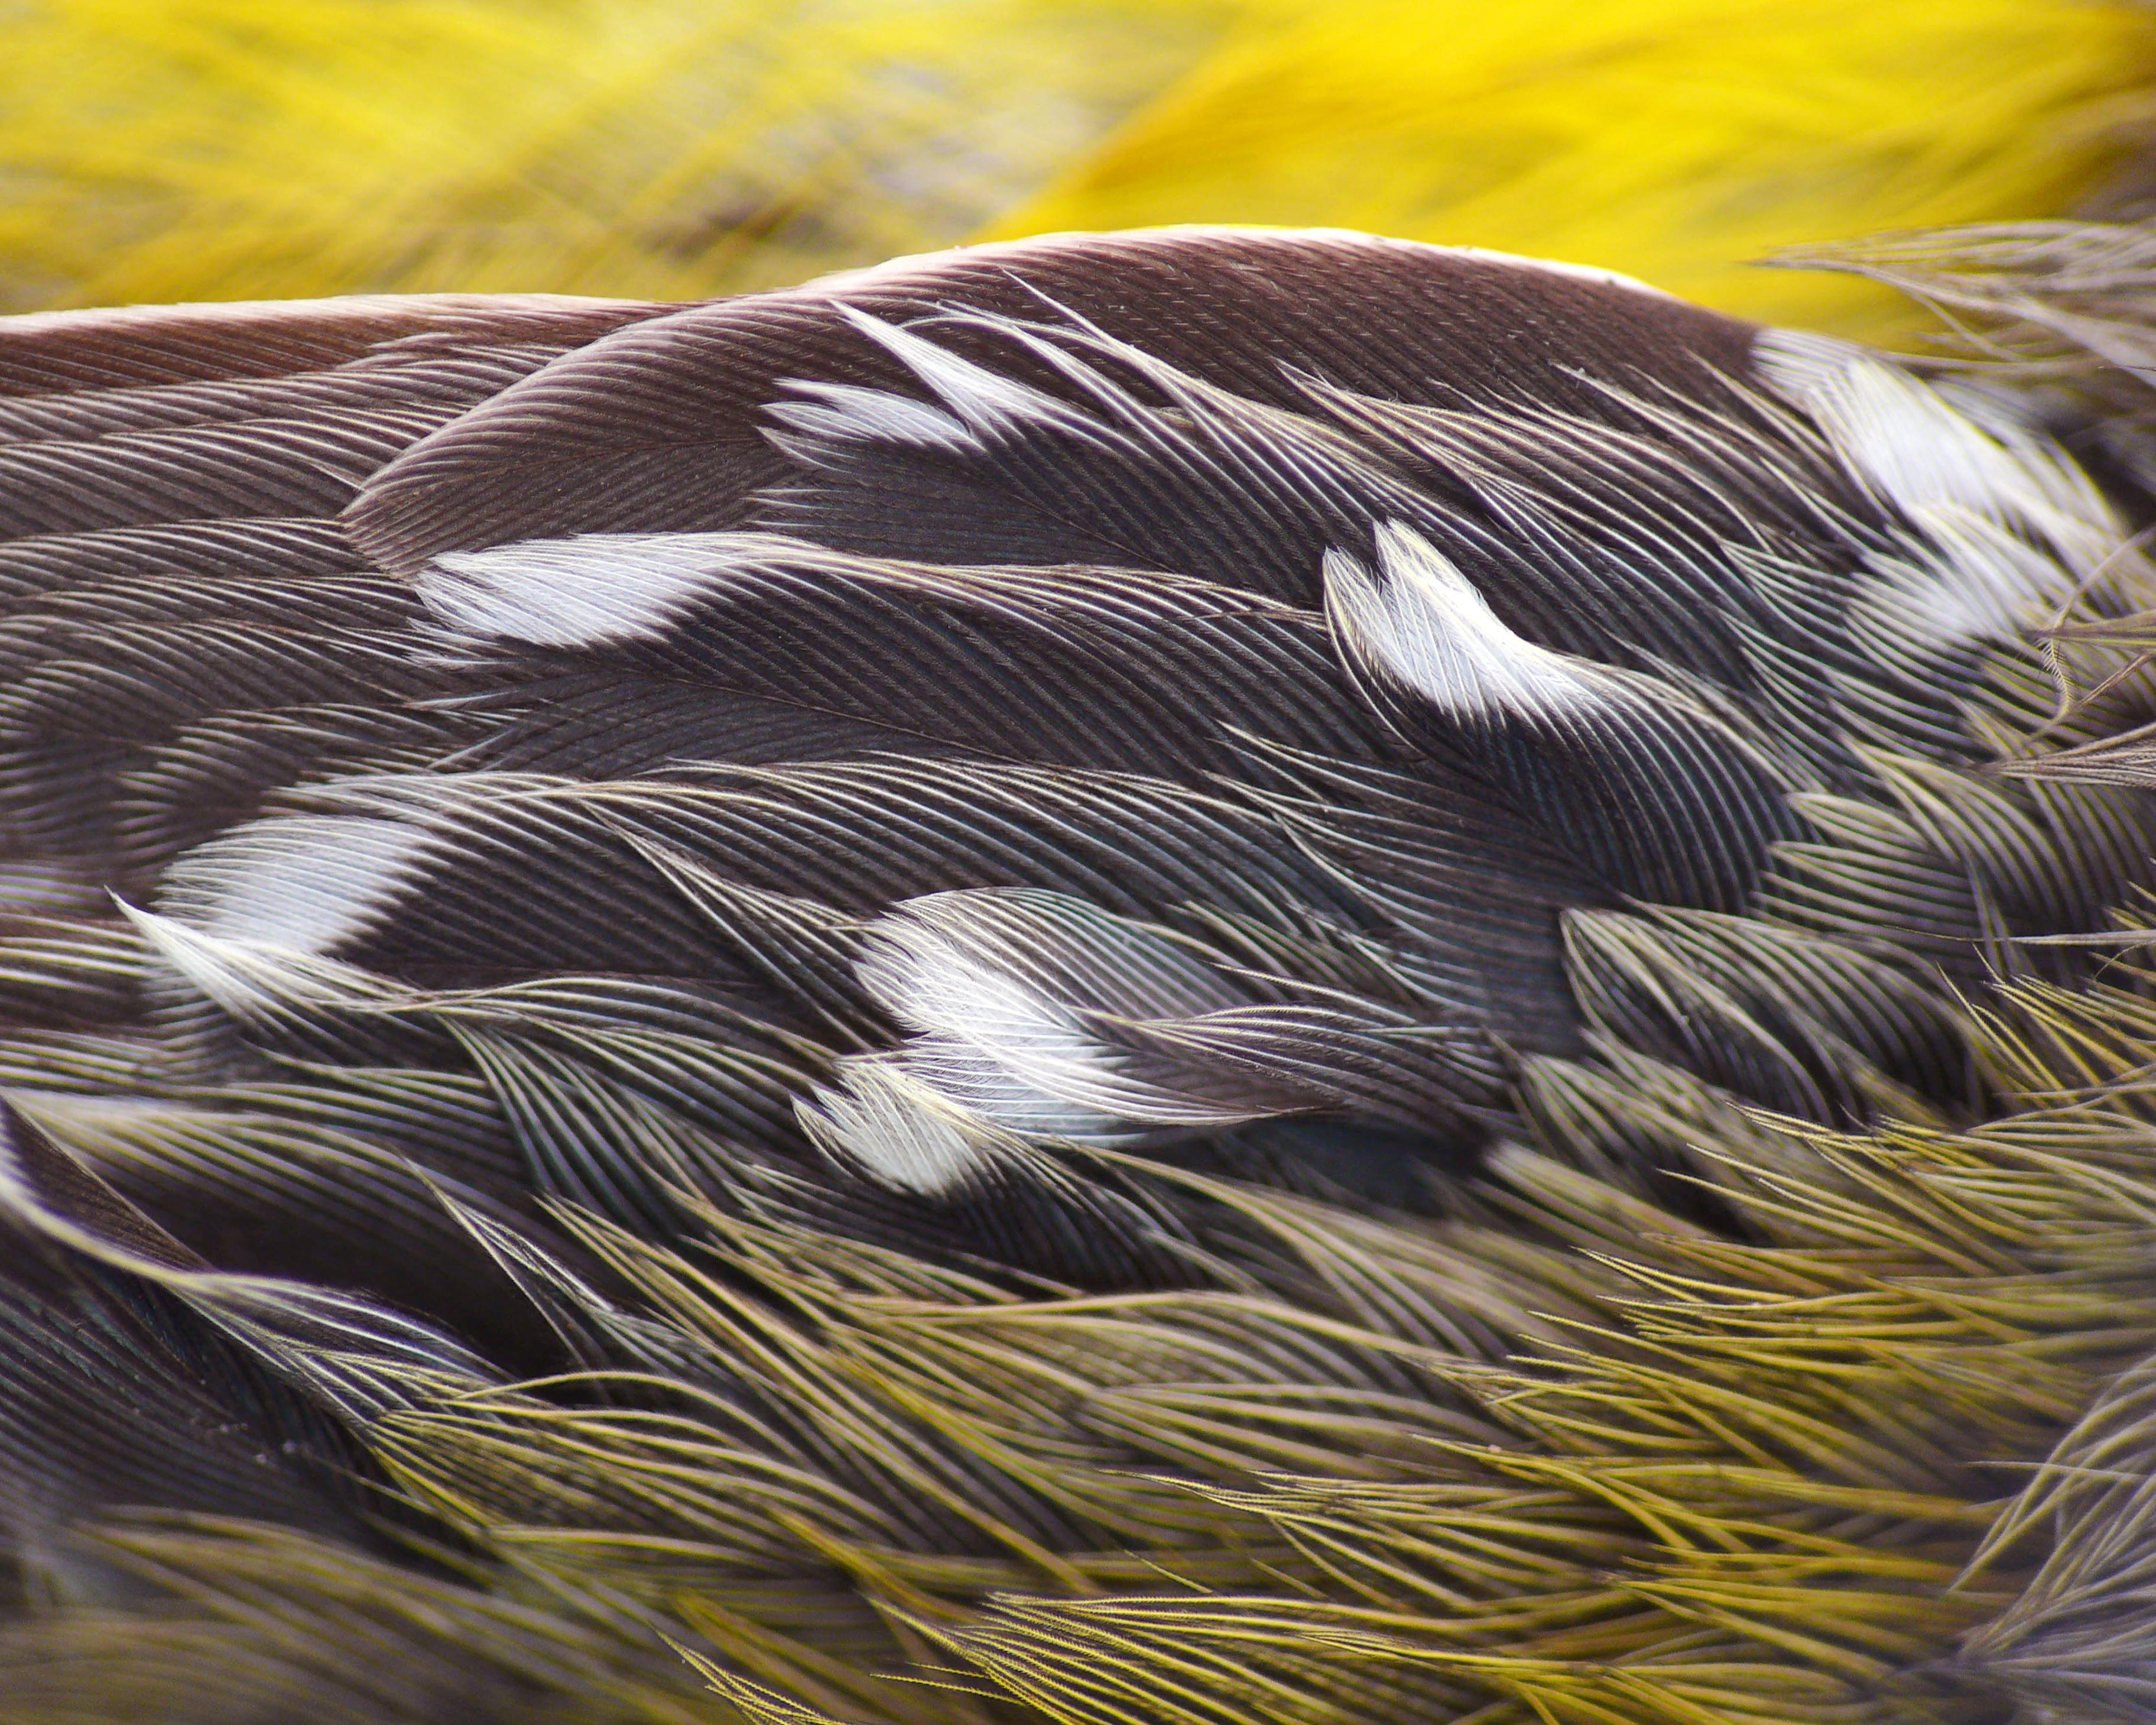 On the Wing of a Warbler, photograph